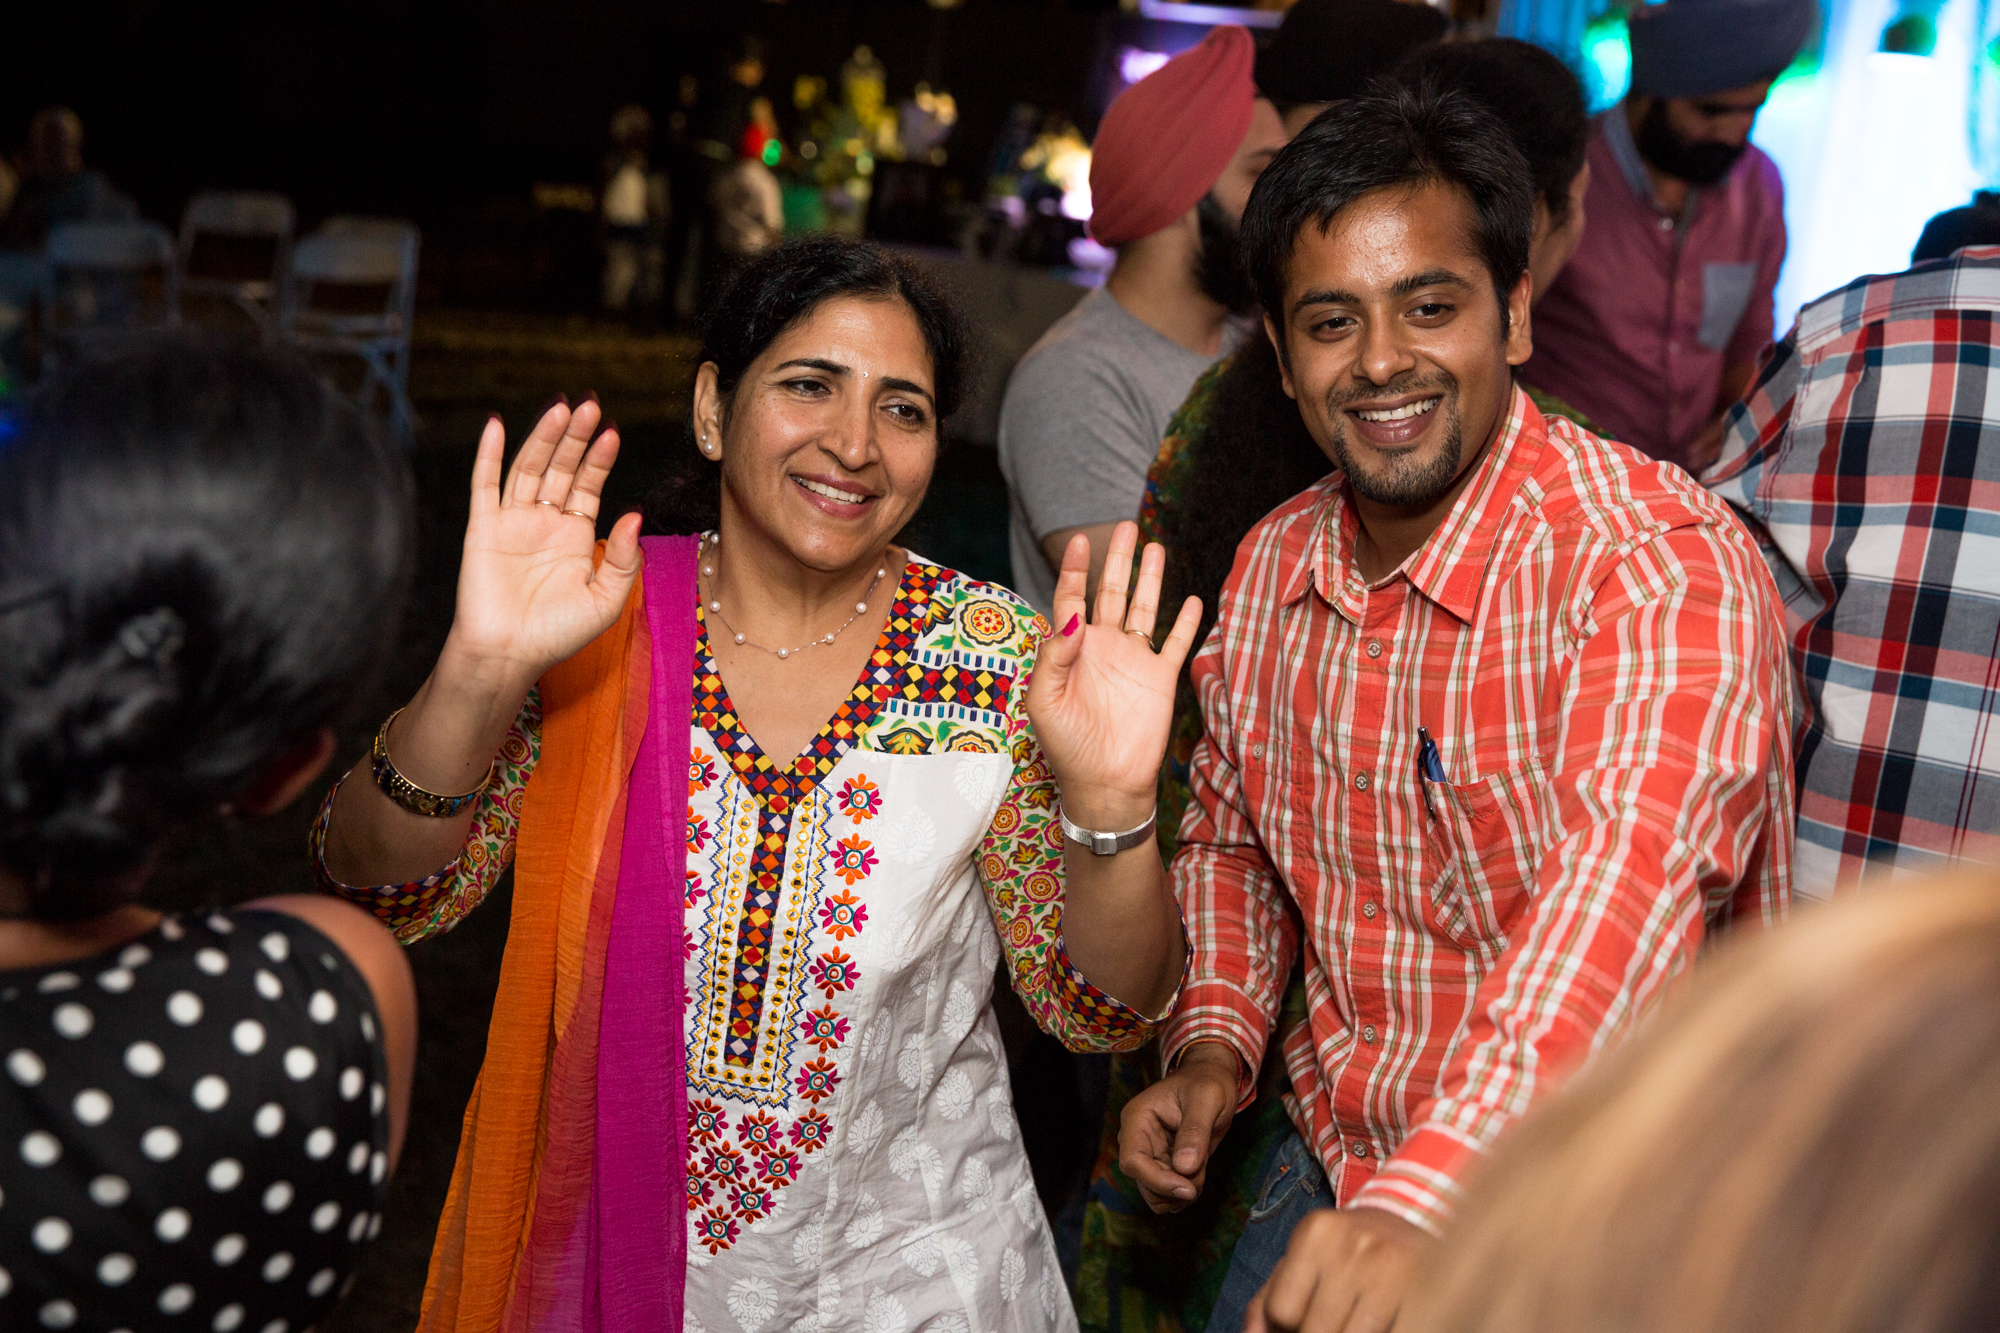 43-William Hendra Photography Singh Graduation Party.jpg